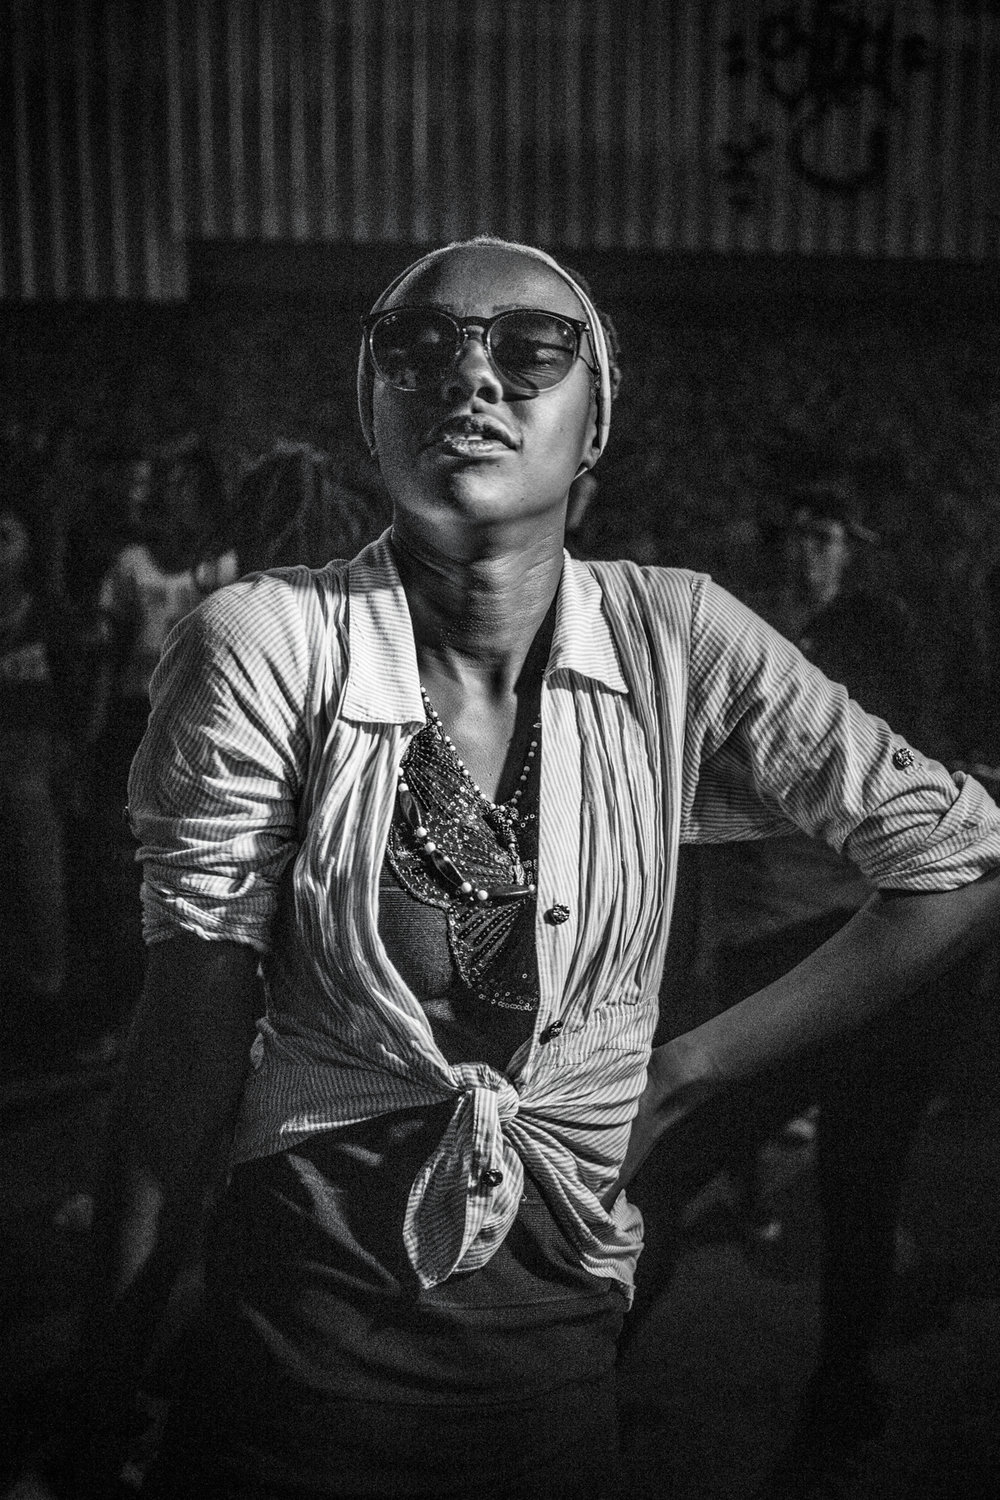 RIO DE JANEIRO, BRAZIL - MAY, 2014: Funk dancer during a charme party under a bridge in the favela of Madureira in Northern Rio.Any number of influences can be found in Brazil?s funk music, a diverse and dynamic genre which has become a worldwide cultural phenomenon, booming far from the favelas, where the carioca funk was born. But for those inhabitants of Rio de Janeiro who are not part of the bourgeoisie and whose reality unfolds in the adjacent favelas, funk signifies not only a music genre, but also a dance, a beat and a way of talking about hardship. In no other music genre is there such an aggressive assertion of sexuality, masculinity, oppression, poverty and law-defying uprising. This is then counter-balanced by a humbling presence of lyrics focusing on black pride, dignity in the face of injustice.